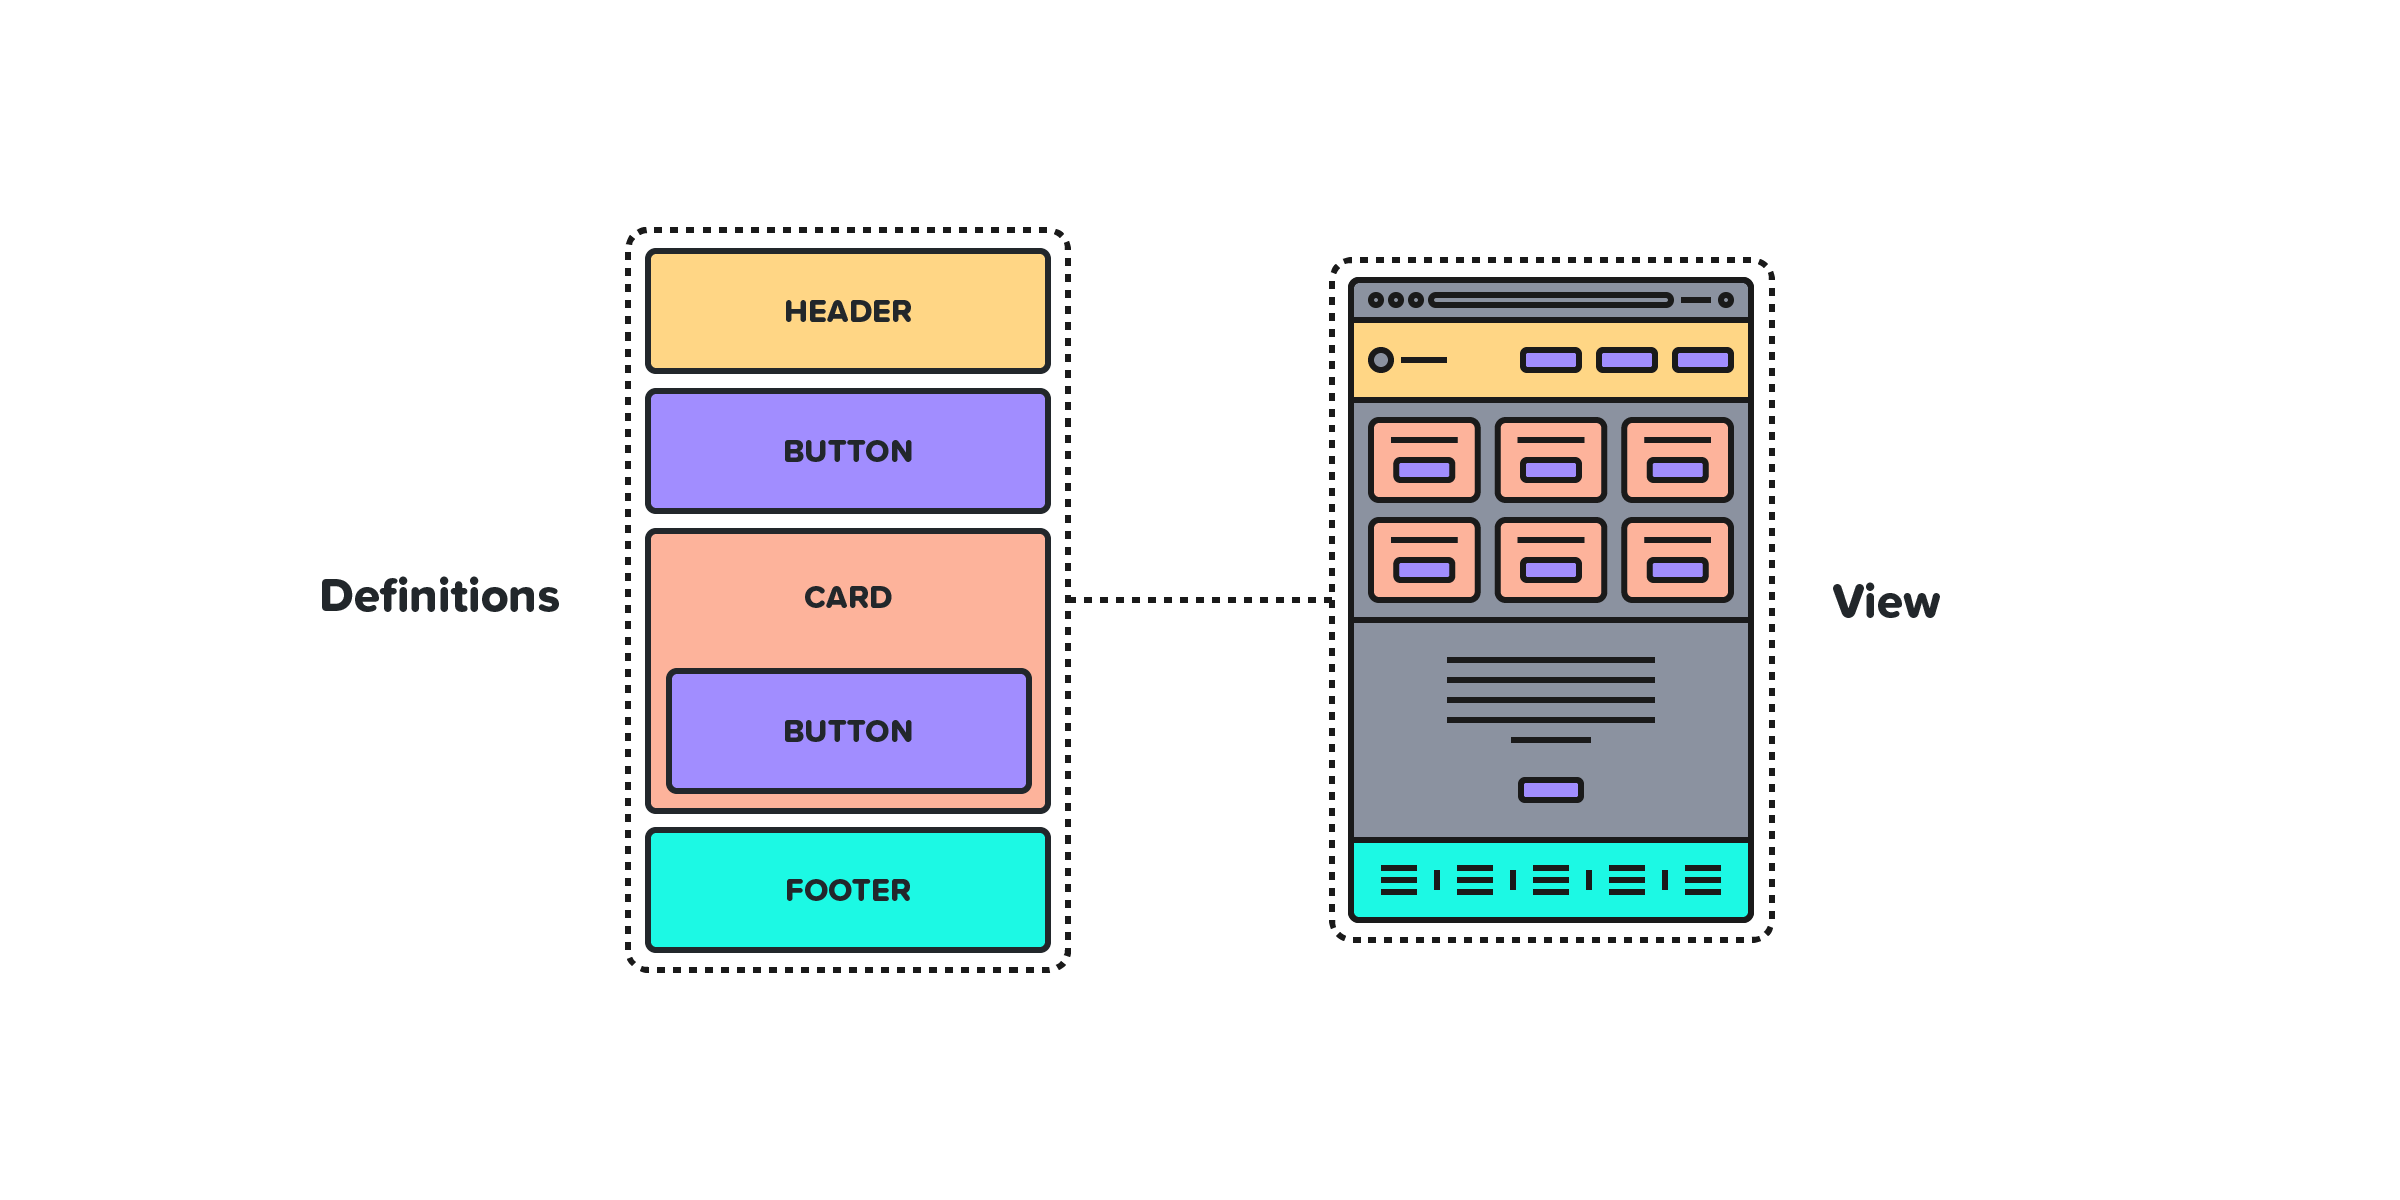 A key and map showing the abstracted modules used within a mockup.